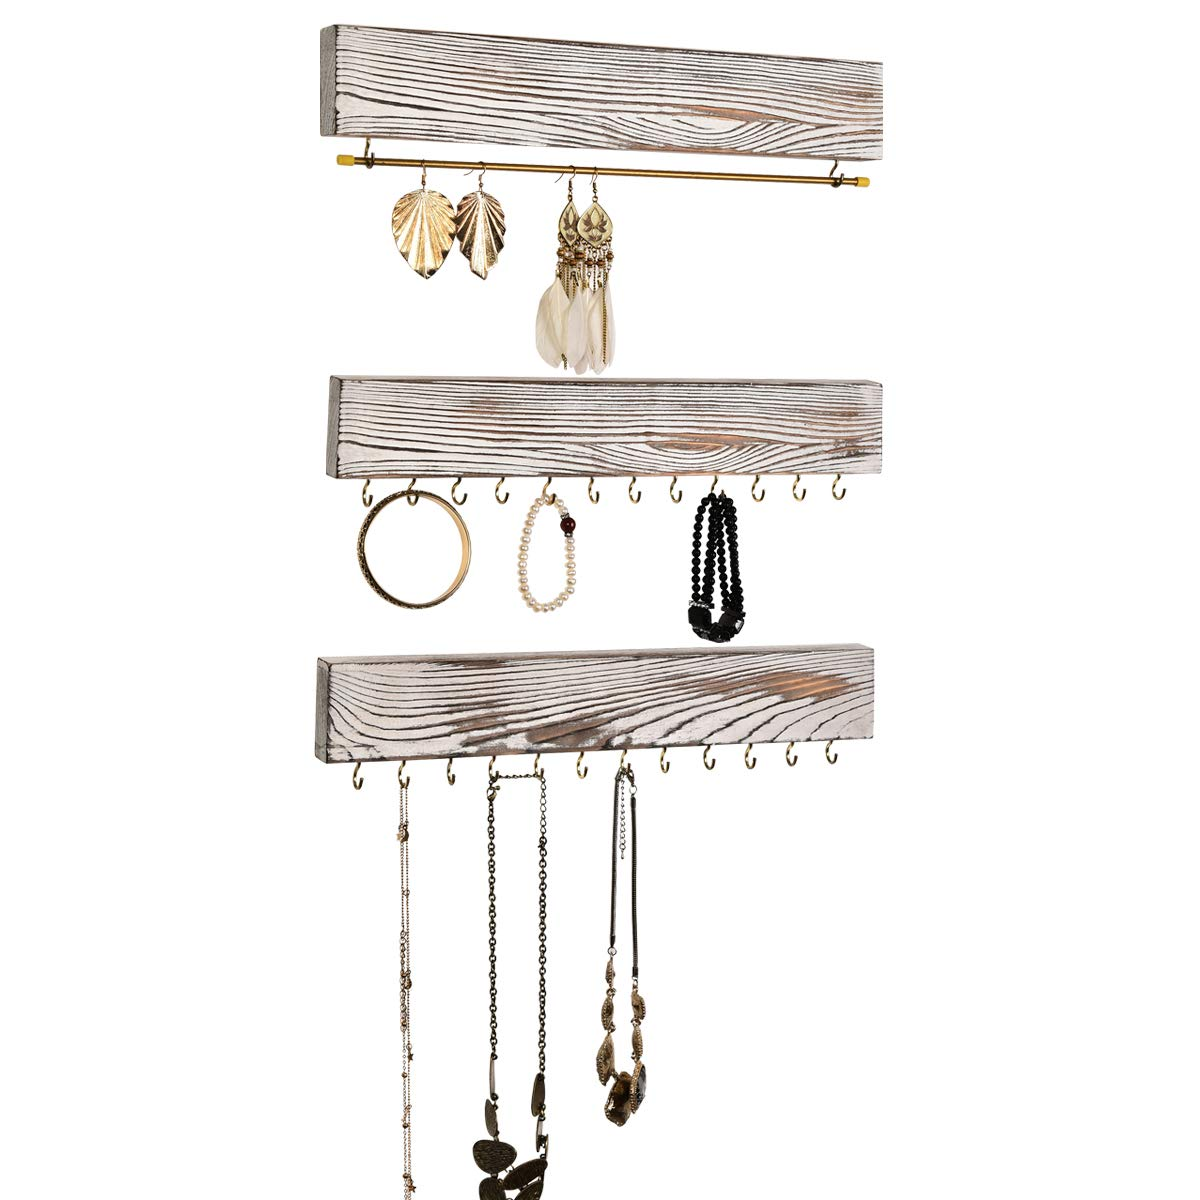 ASHLEYRIVER Wall Jewelry Organizer Set of 3 Wood Hanging Jewelry Organizer Holder for Necklaces, Ear Studs,Rings, Earrings, Bracelets- New White